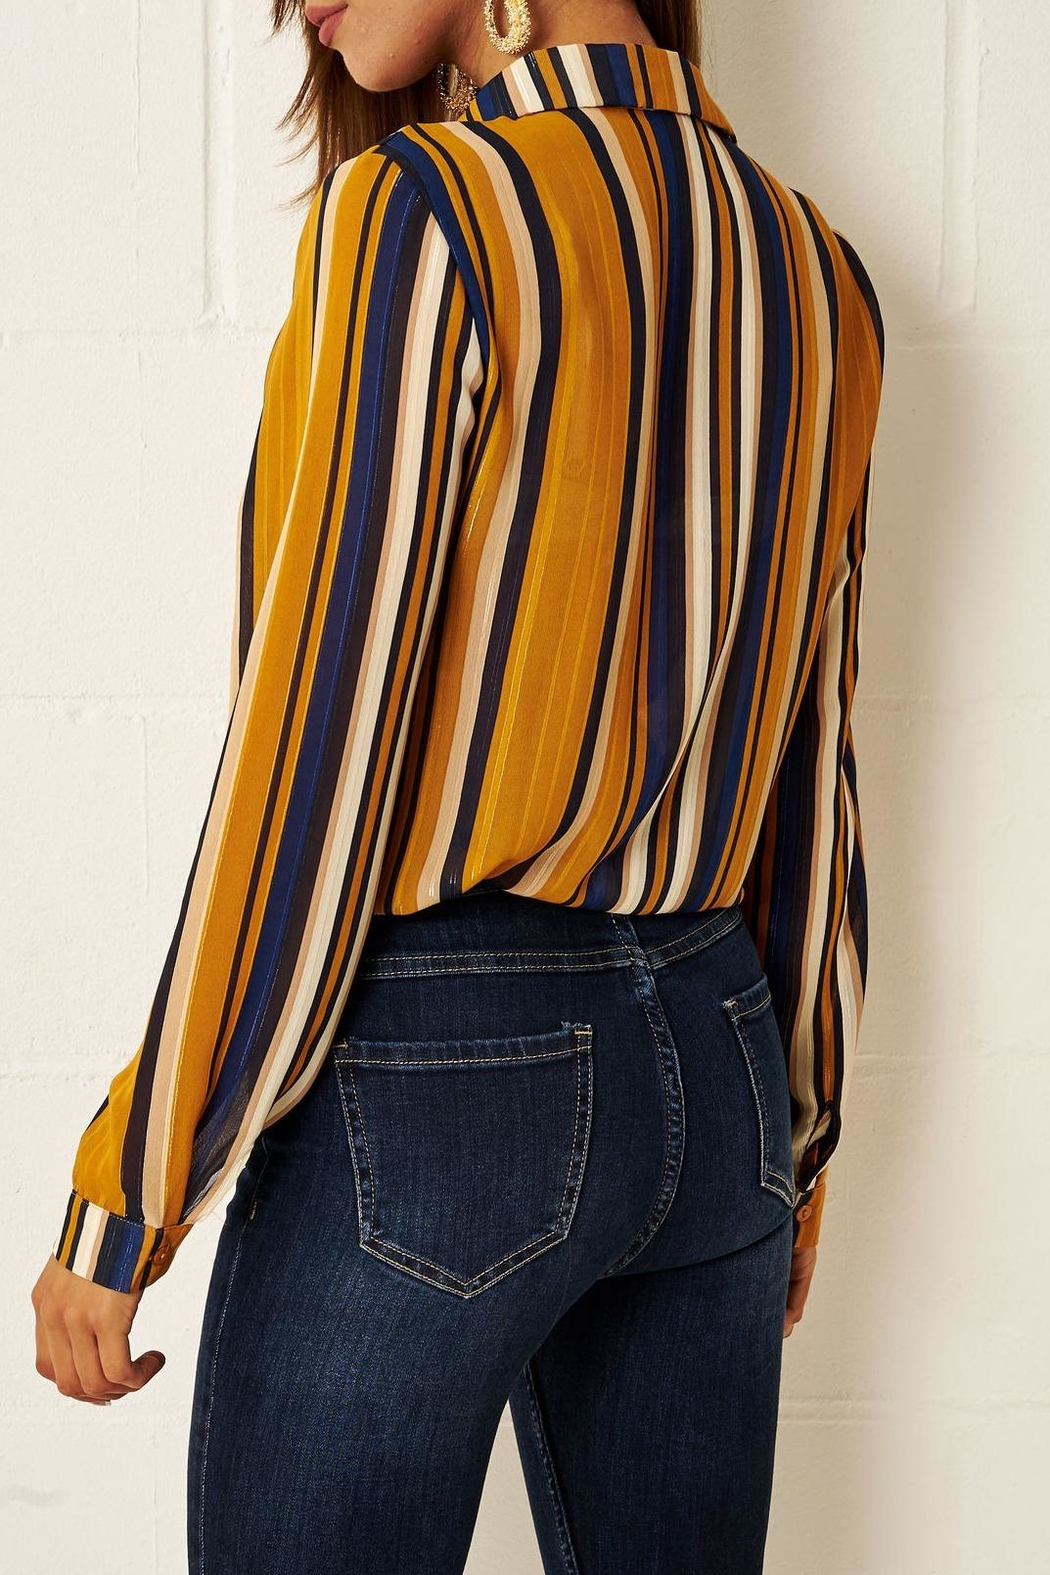 frontrow Multi-Colour Striped Shirt - Front Full Image